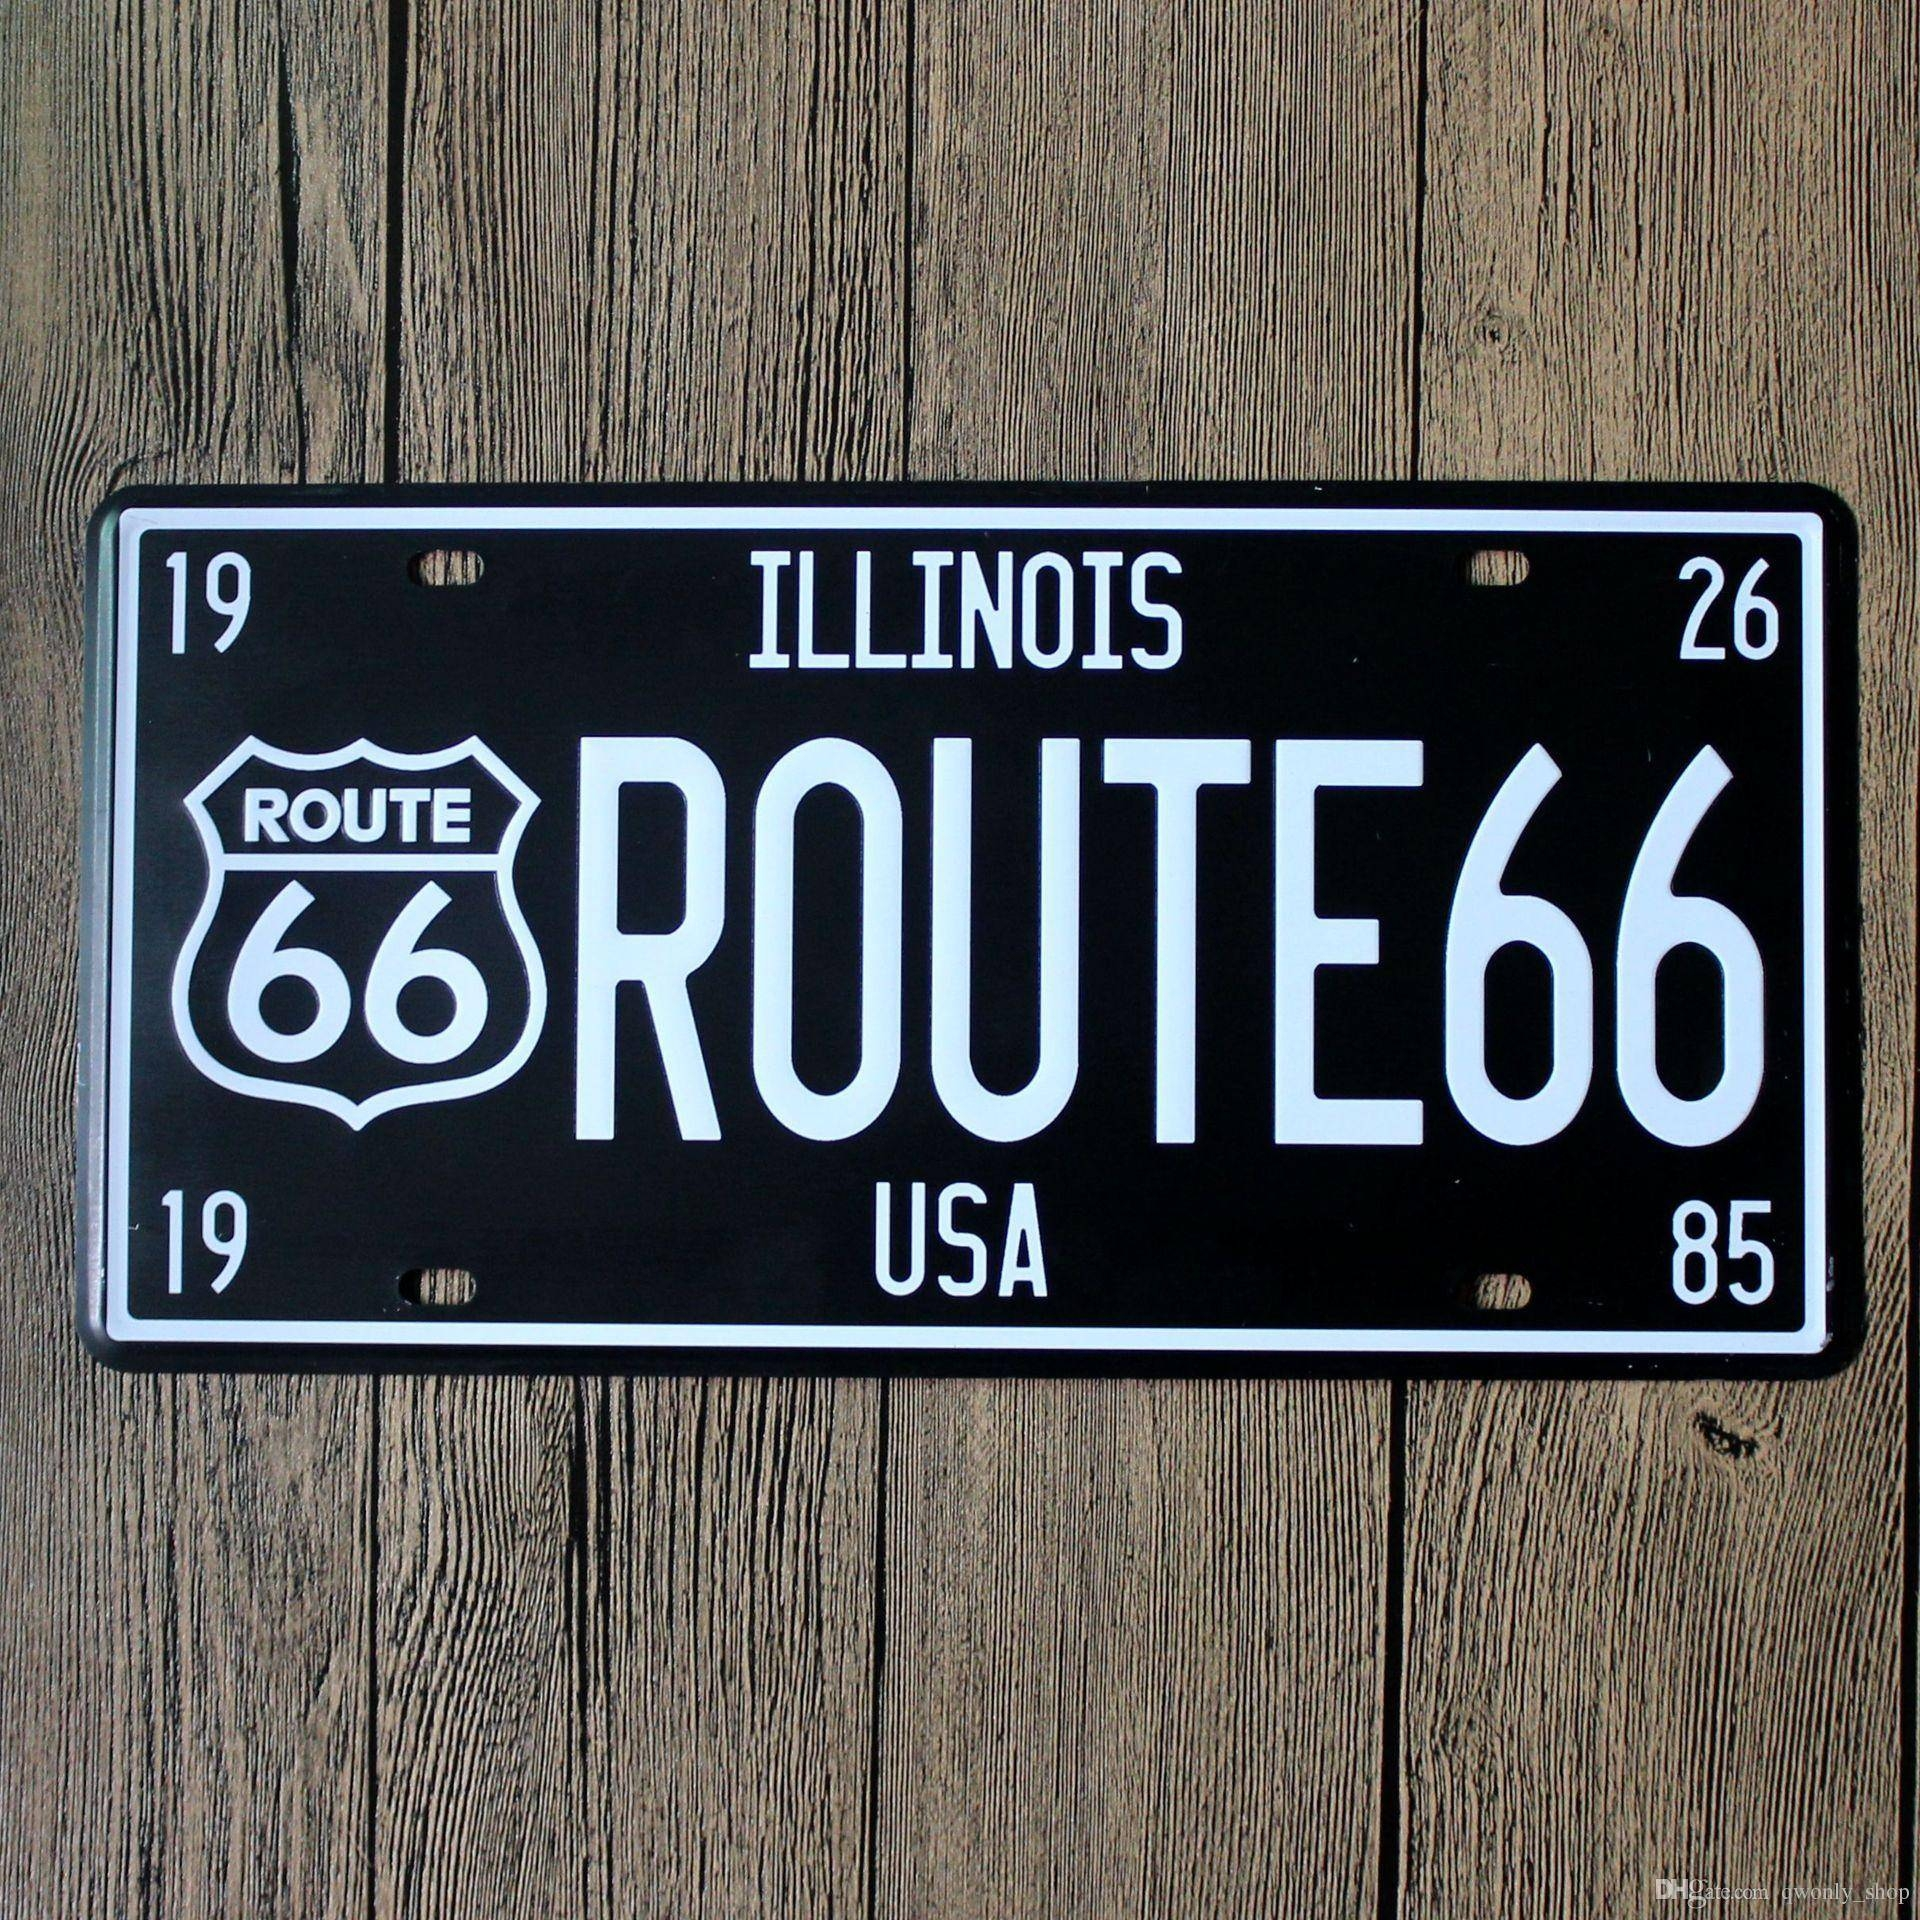 Route Usa 66 Vintage Craft Tin Sign Retro Metal Painting Antique Within Most Recent Retro Metal Wall Art (View 6 of 20)